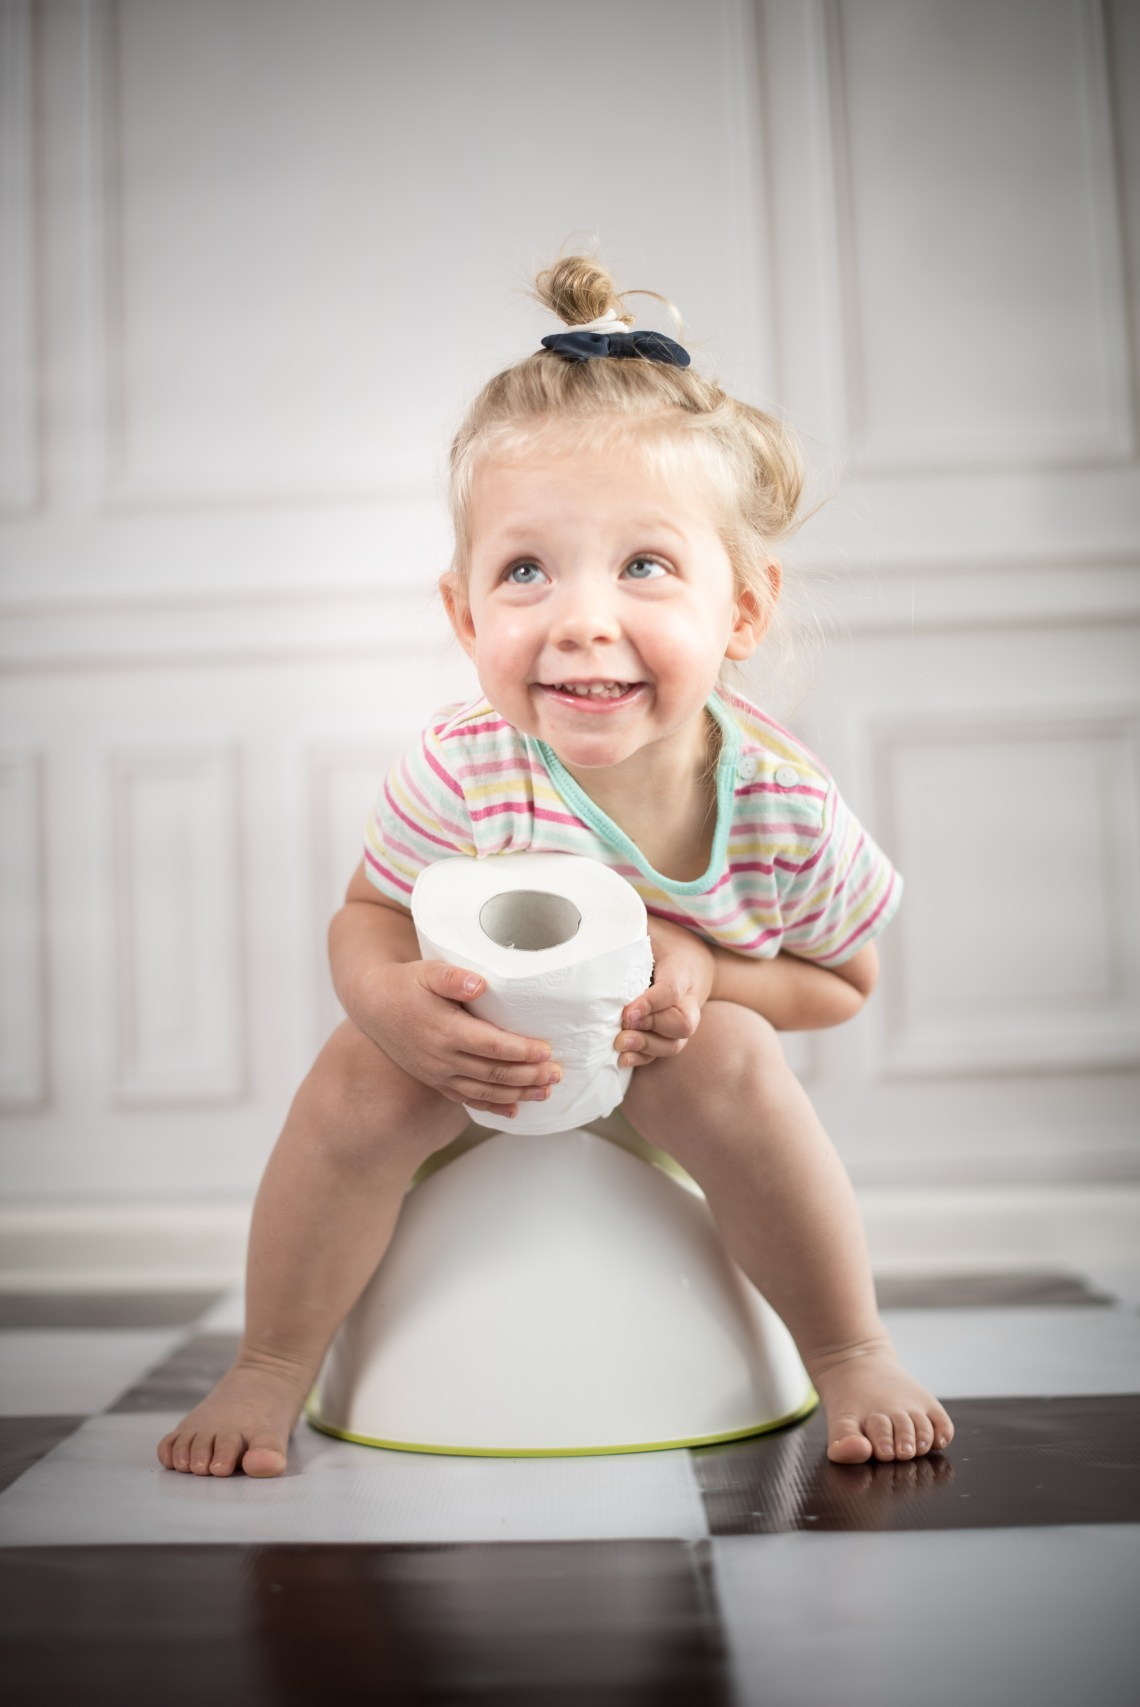 Image Result For At What Age Do You Start Potty Training A Child